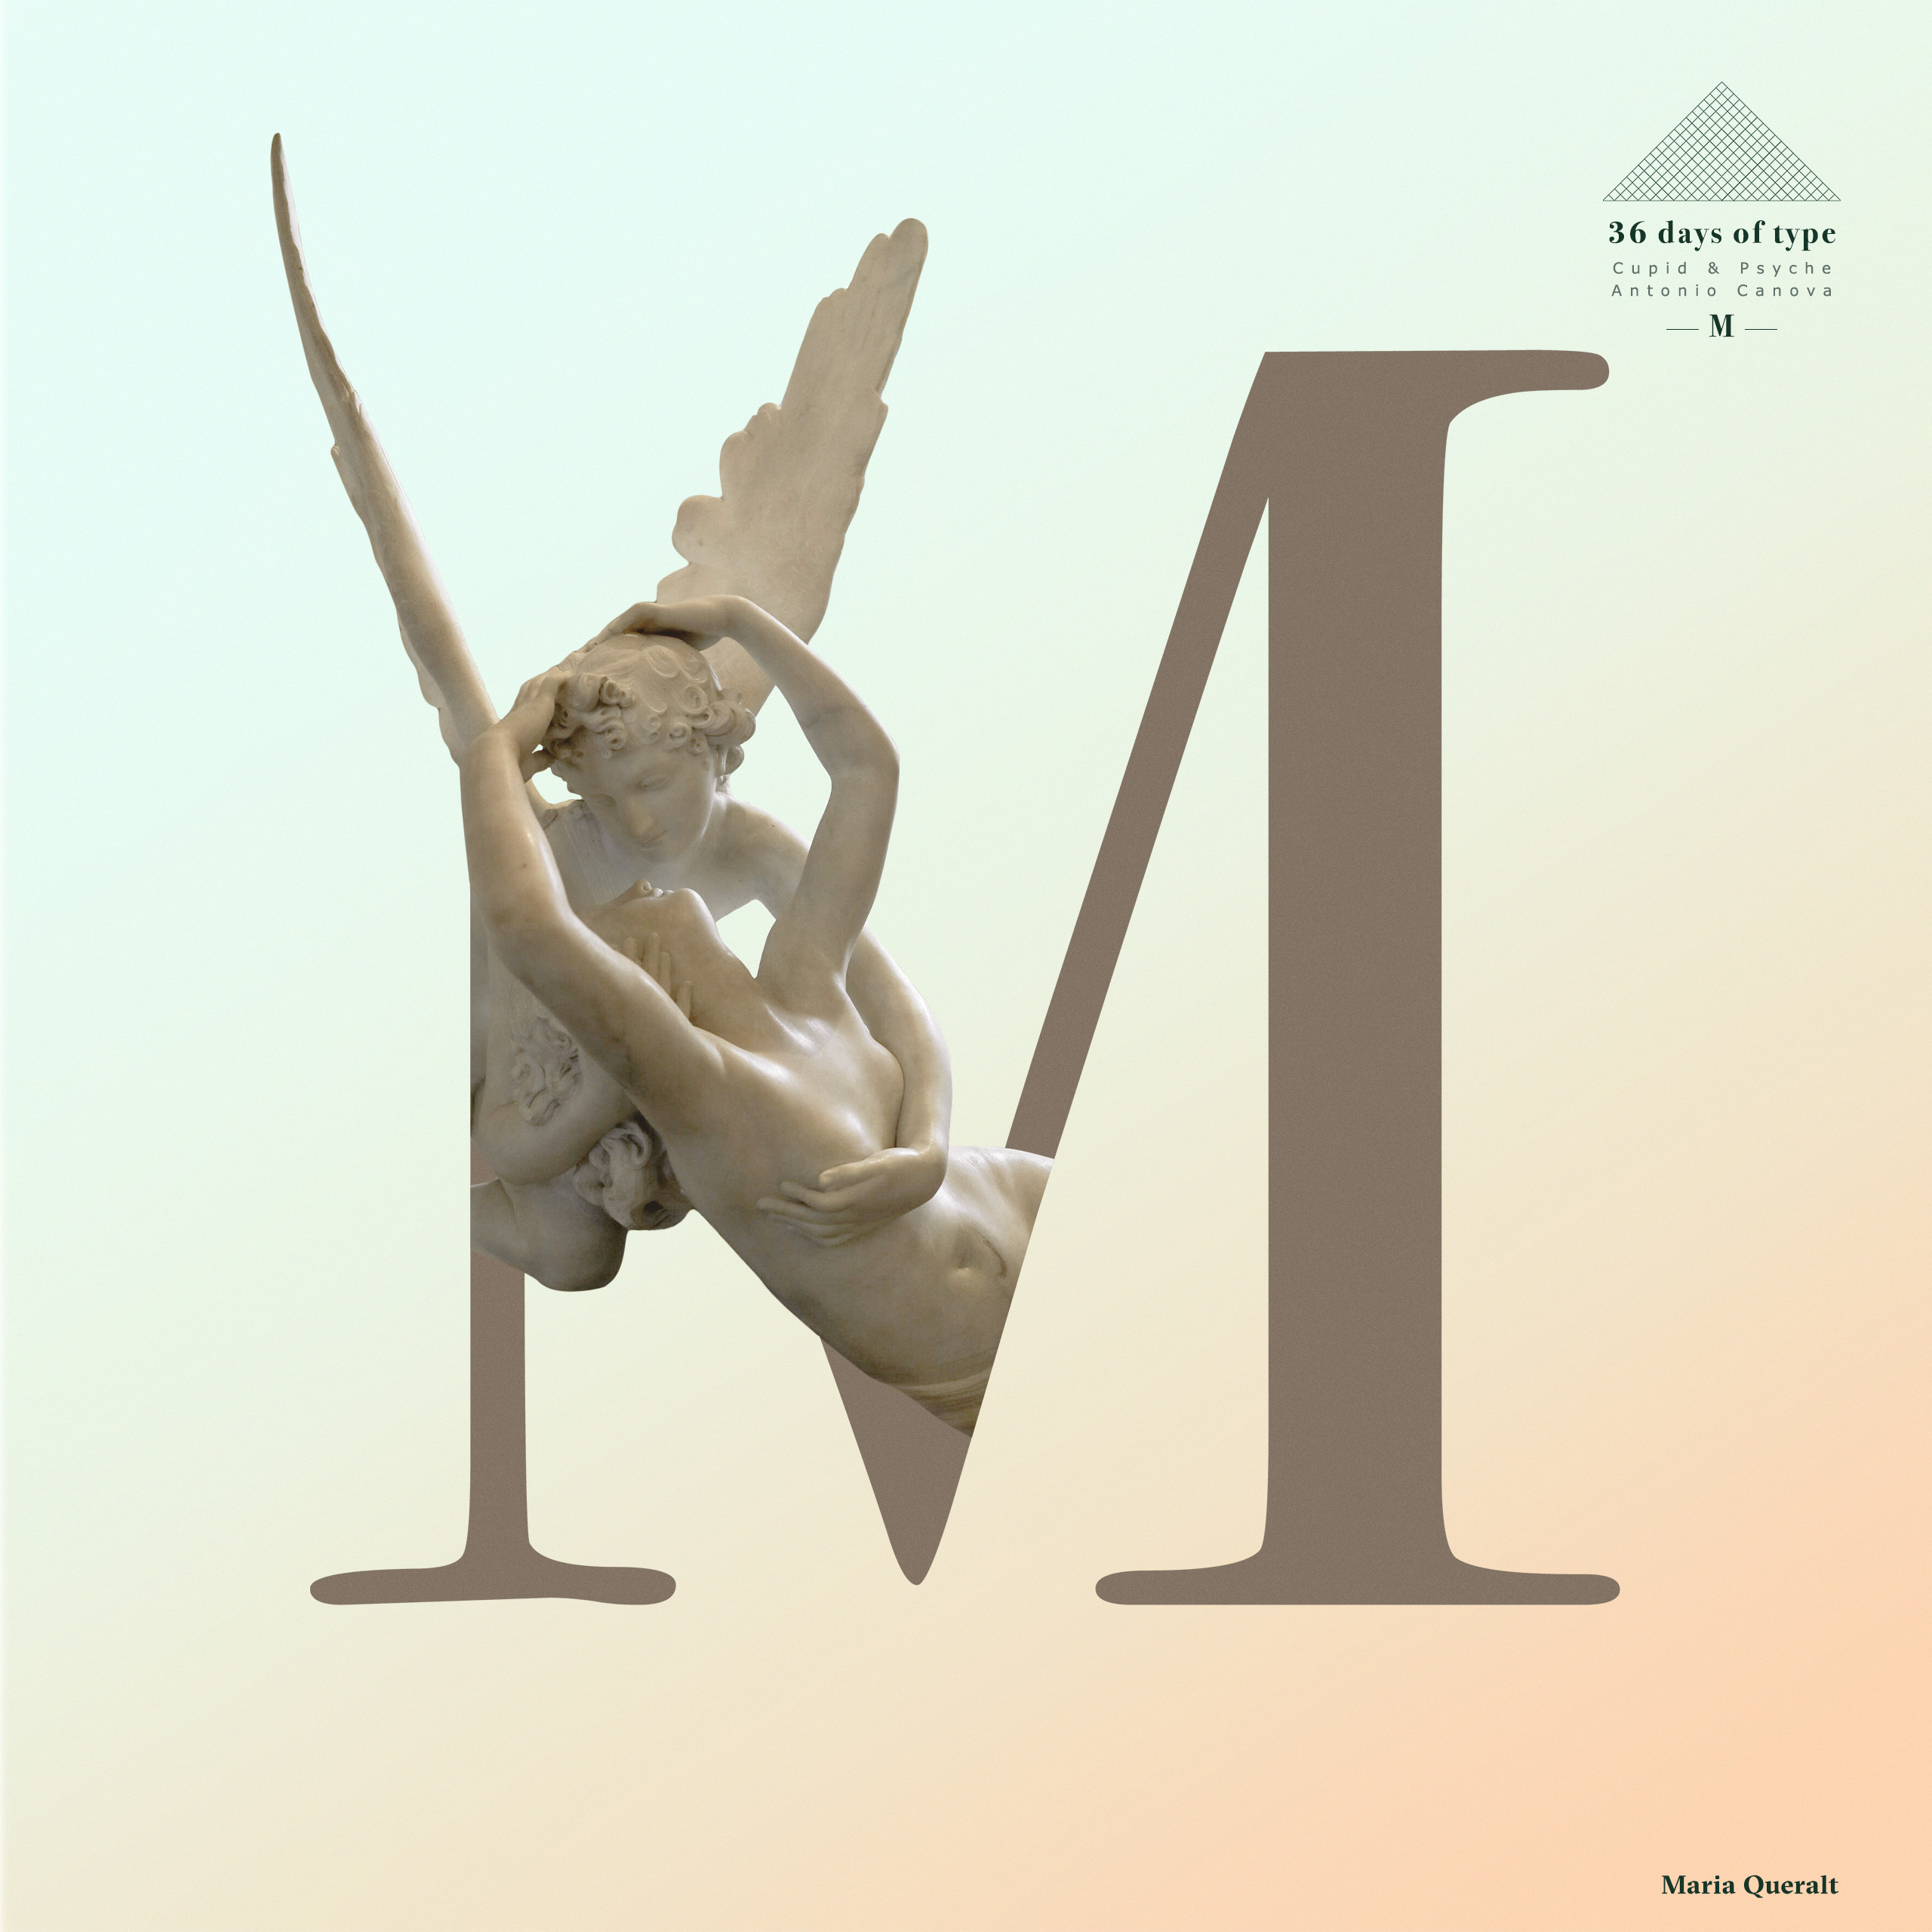 "Typography letter M of the Double Exposure Typography Set based on Antonio Canova's sculpture ""Psyche Revived by Cupid's Kiss "" for the 36 days of type project. Photography, art direction, concept, design and retouch by Maria Queralt. Louvre Museum, Paris."